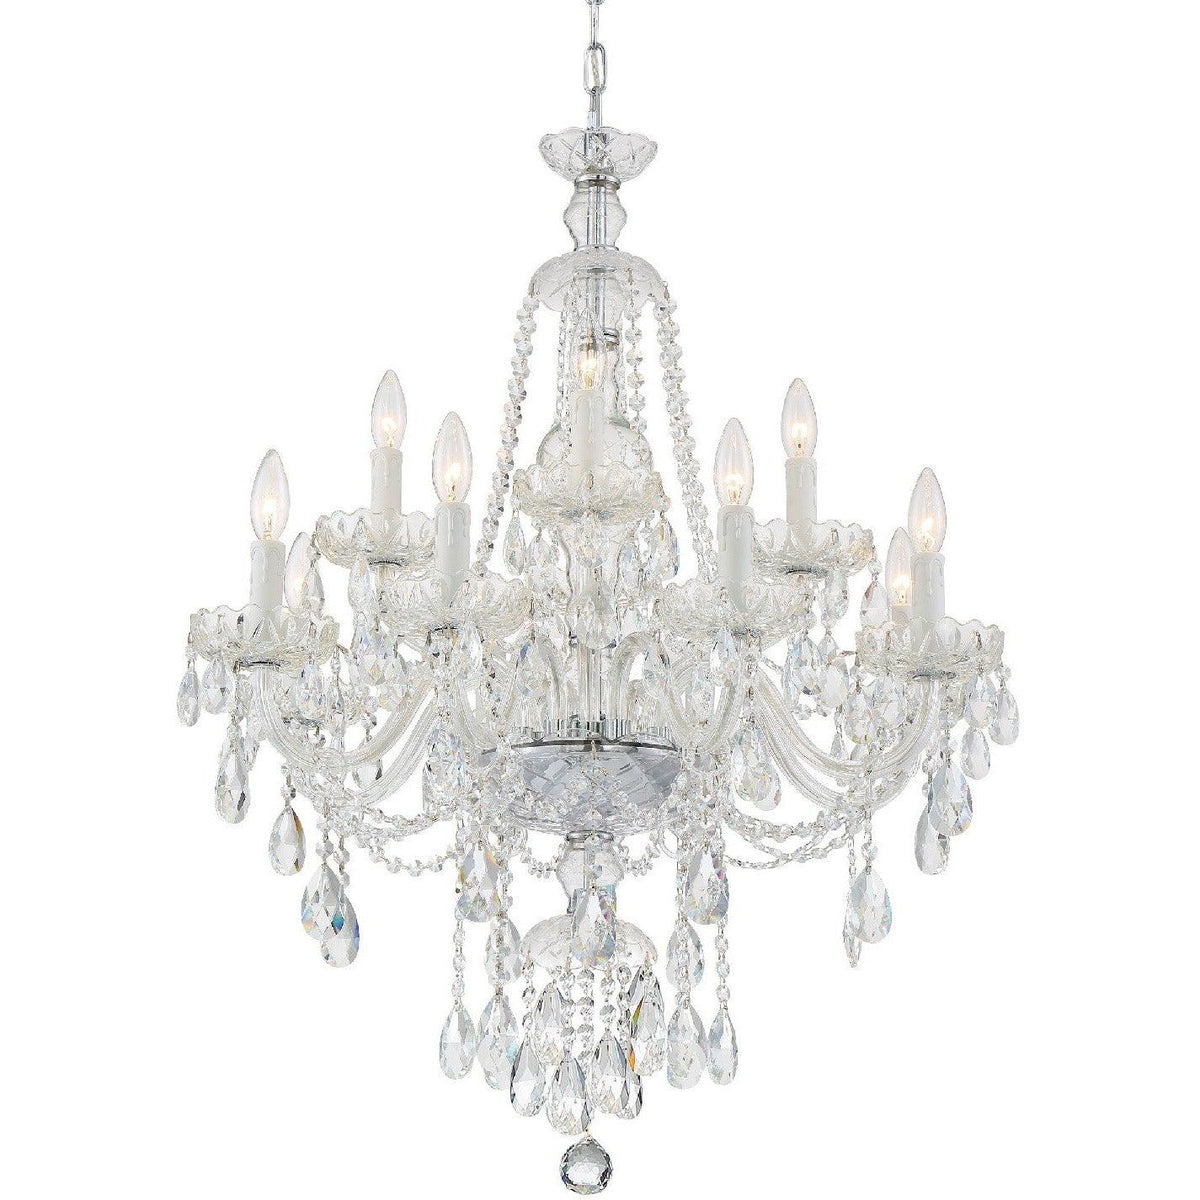 Crystorama - CAN-A1312-CH-CL-SAQ - 12 Light Chandelier - Candace - Polished Chrome